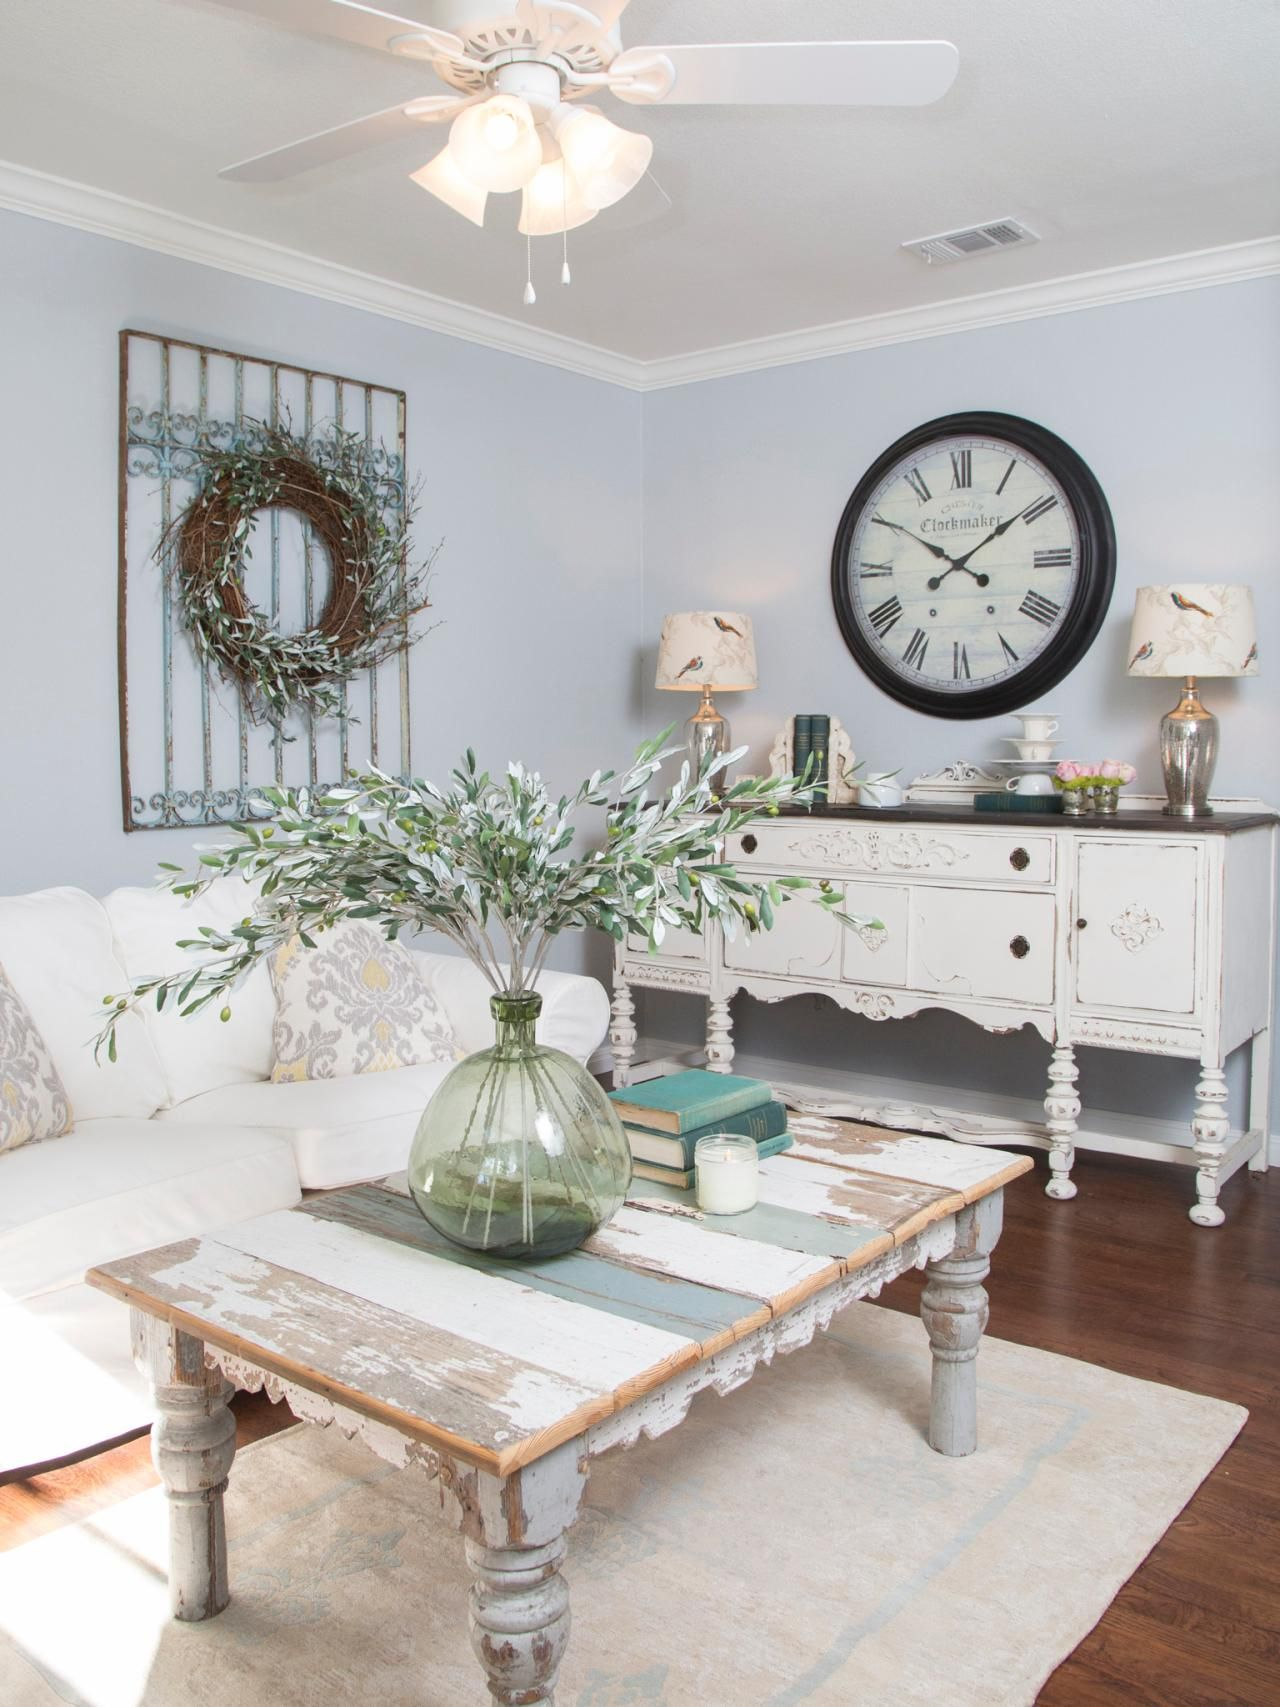 Dekoration wohnzimmer landhausstil  A New Home and a Fresh Beginning for a Texas Mom | Pinterest ...